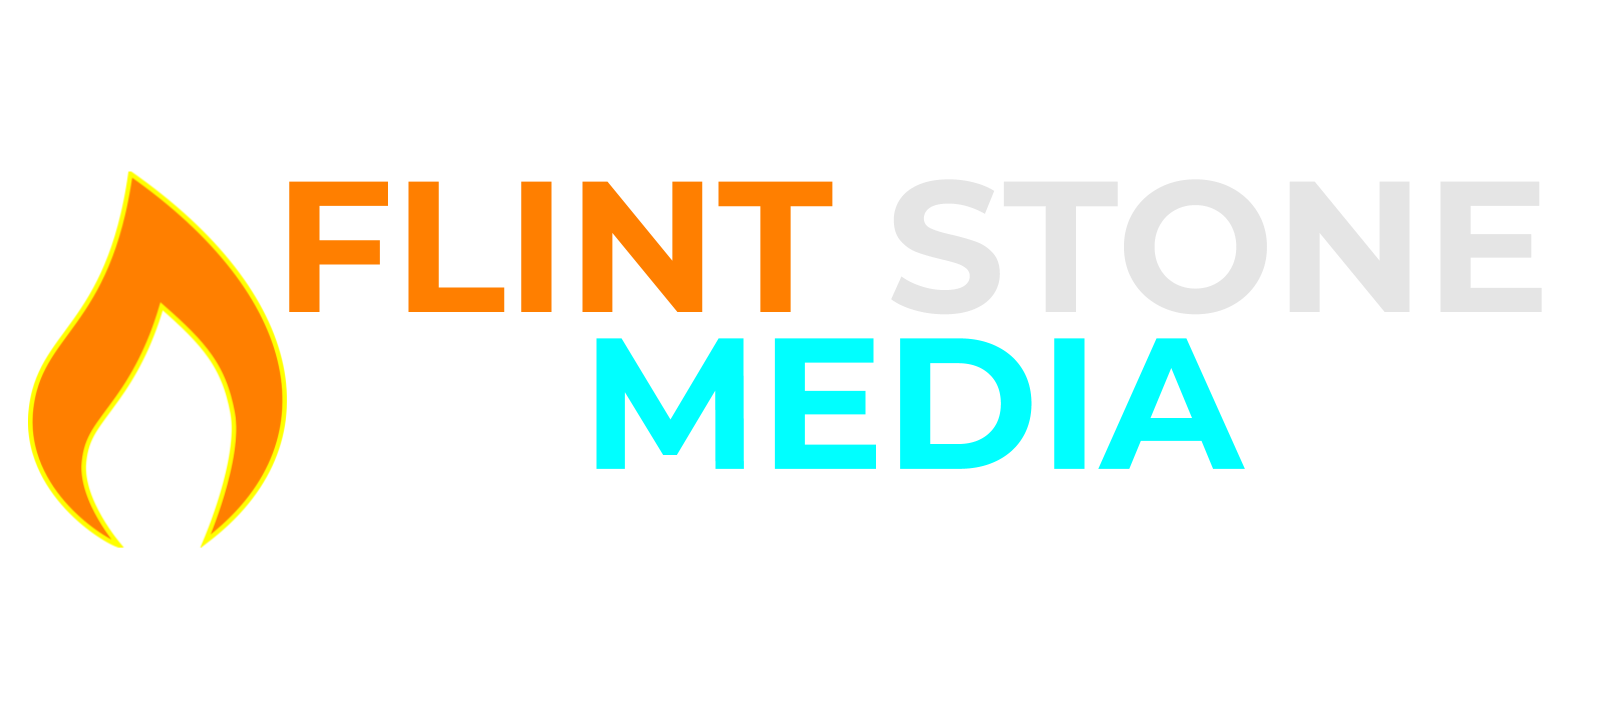 Ignite your podcast platform!